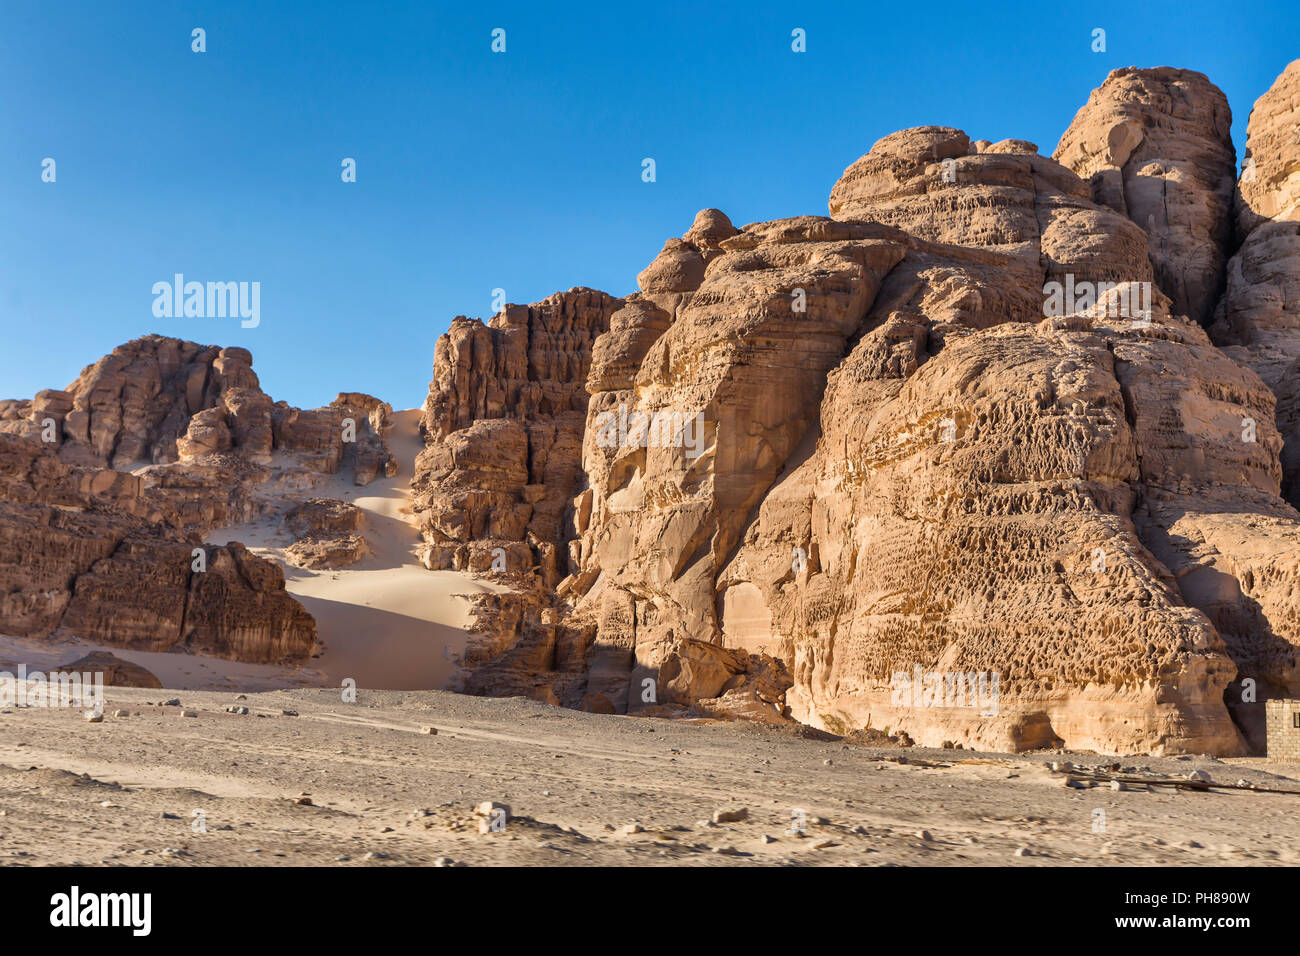 Landscape between Nuweiba and Saint Catherine's Monastery, Sinai peninsula, Egypt - Stock Image